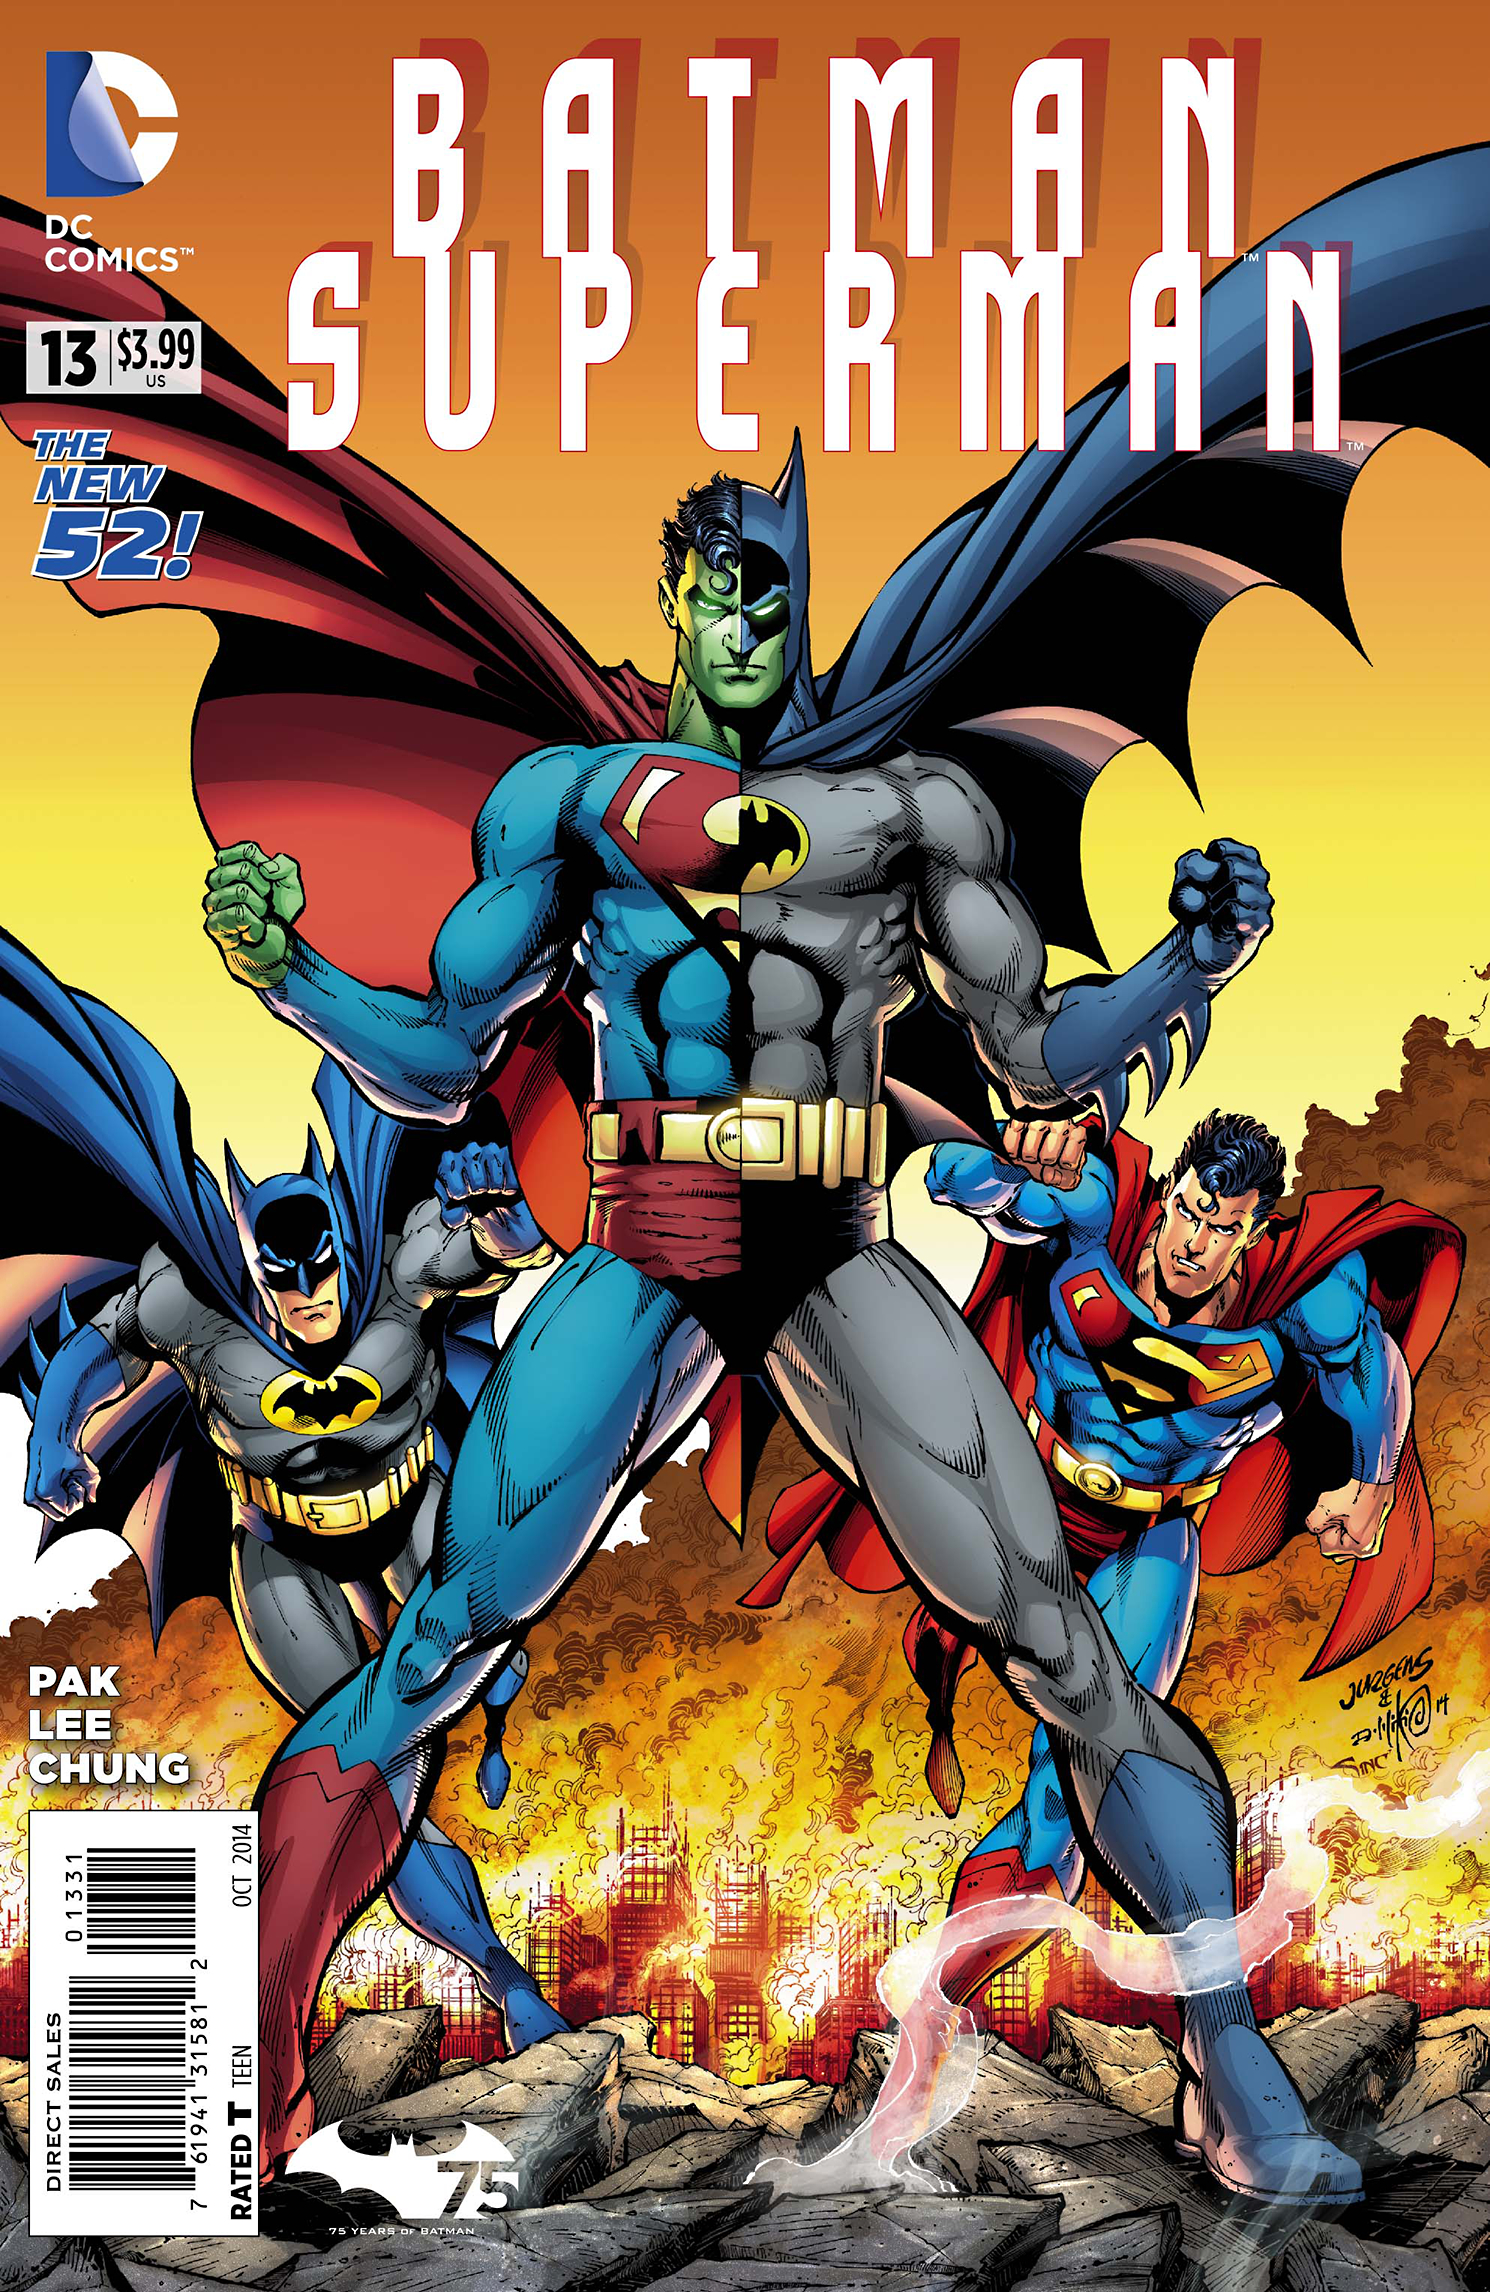 BATMAN SUPERMAN #13 BATMAN 75 VAR ED